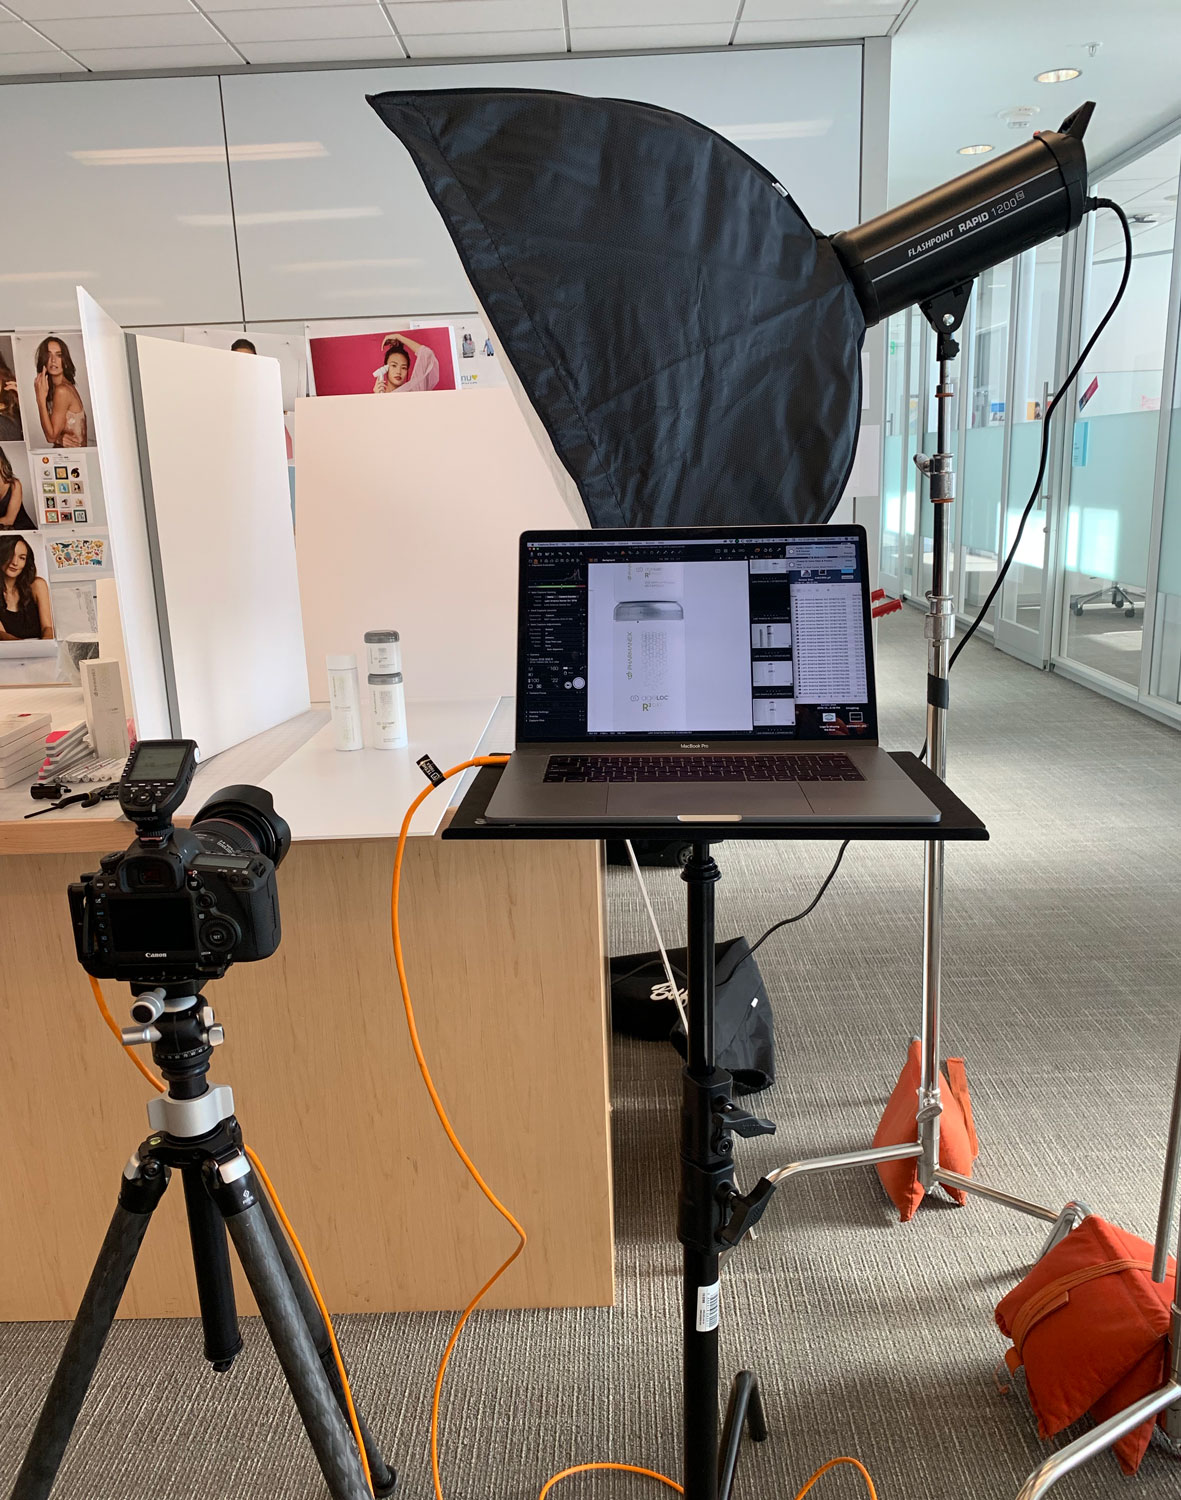 Behind the scenes of a product shoot